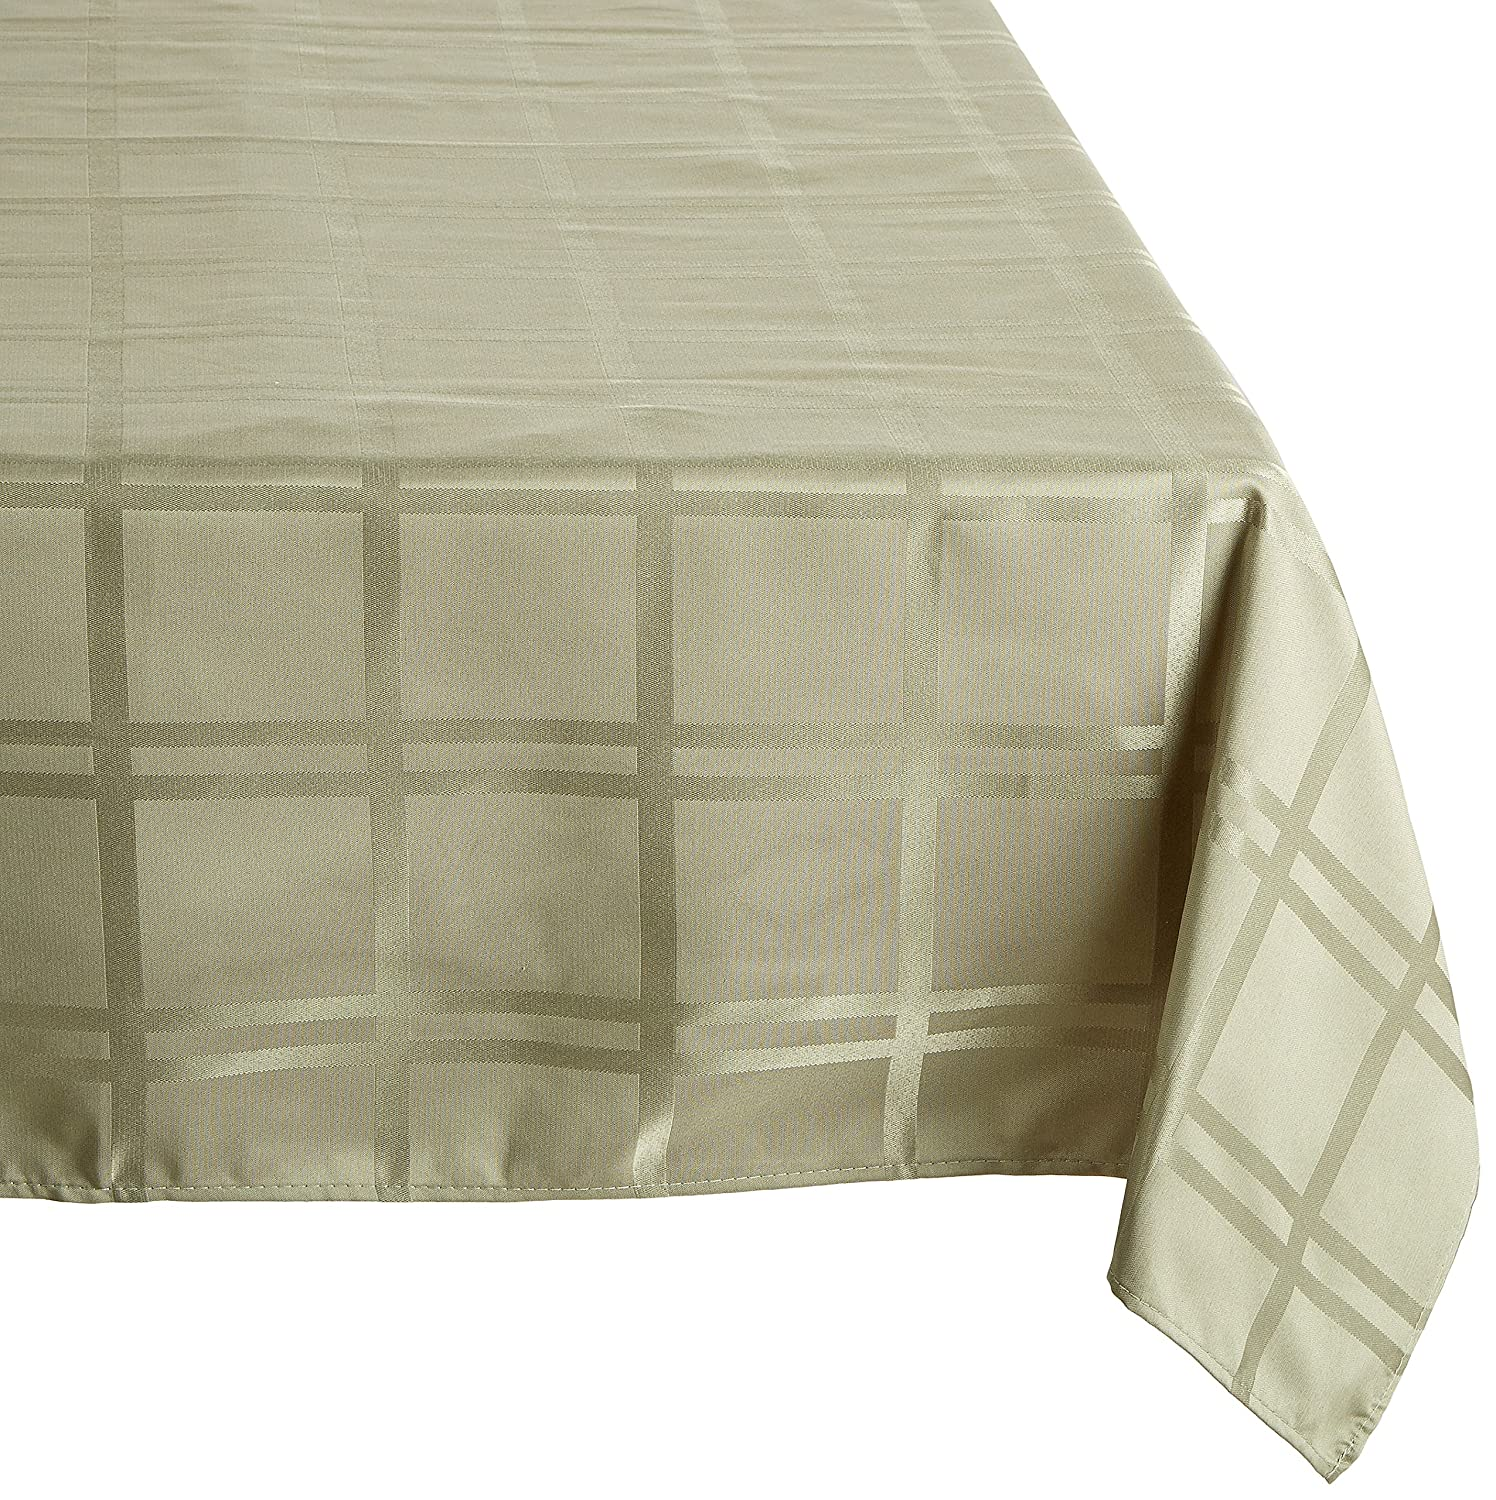 Christmas Tablescape Decor - Elegant formal sage easy care spill-proof microfiber fabric rectangular tablecloth